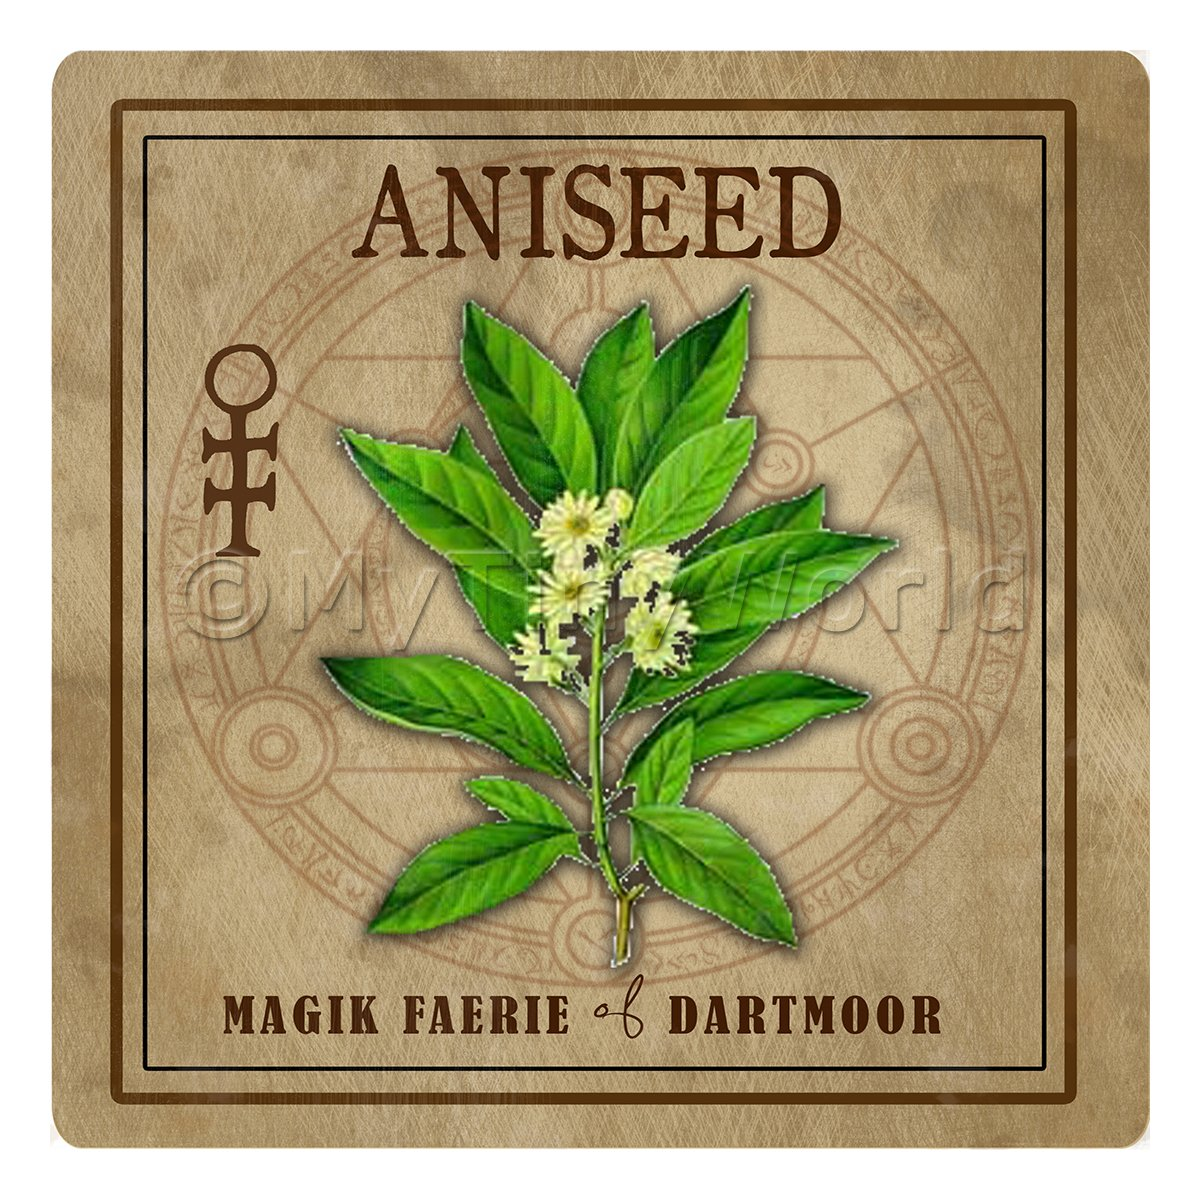 Dolls House Herbalist/Apothecary Square Aniseed Herb Label